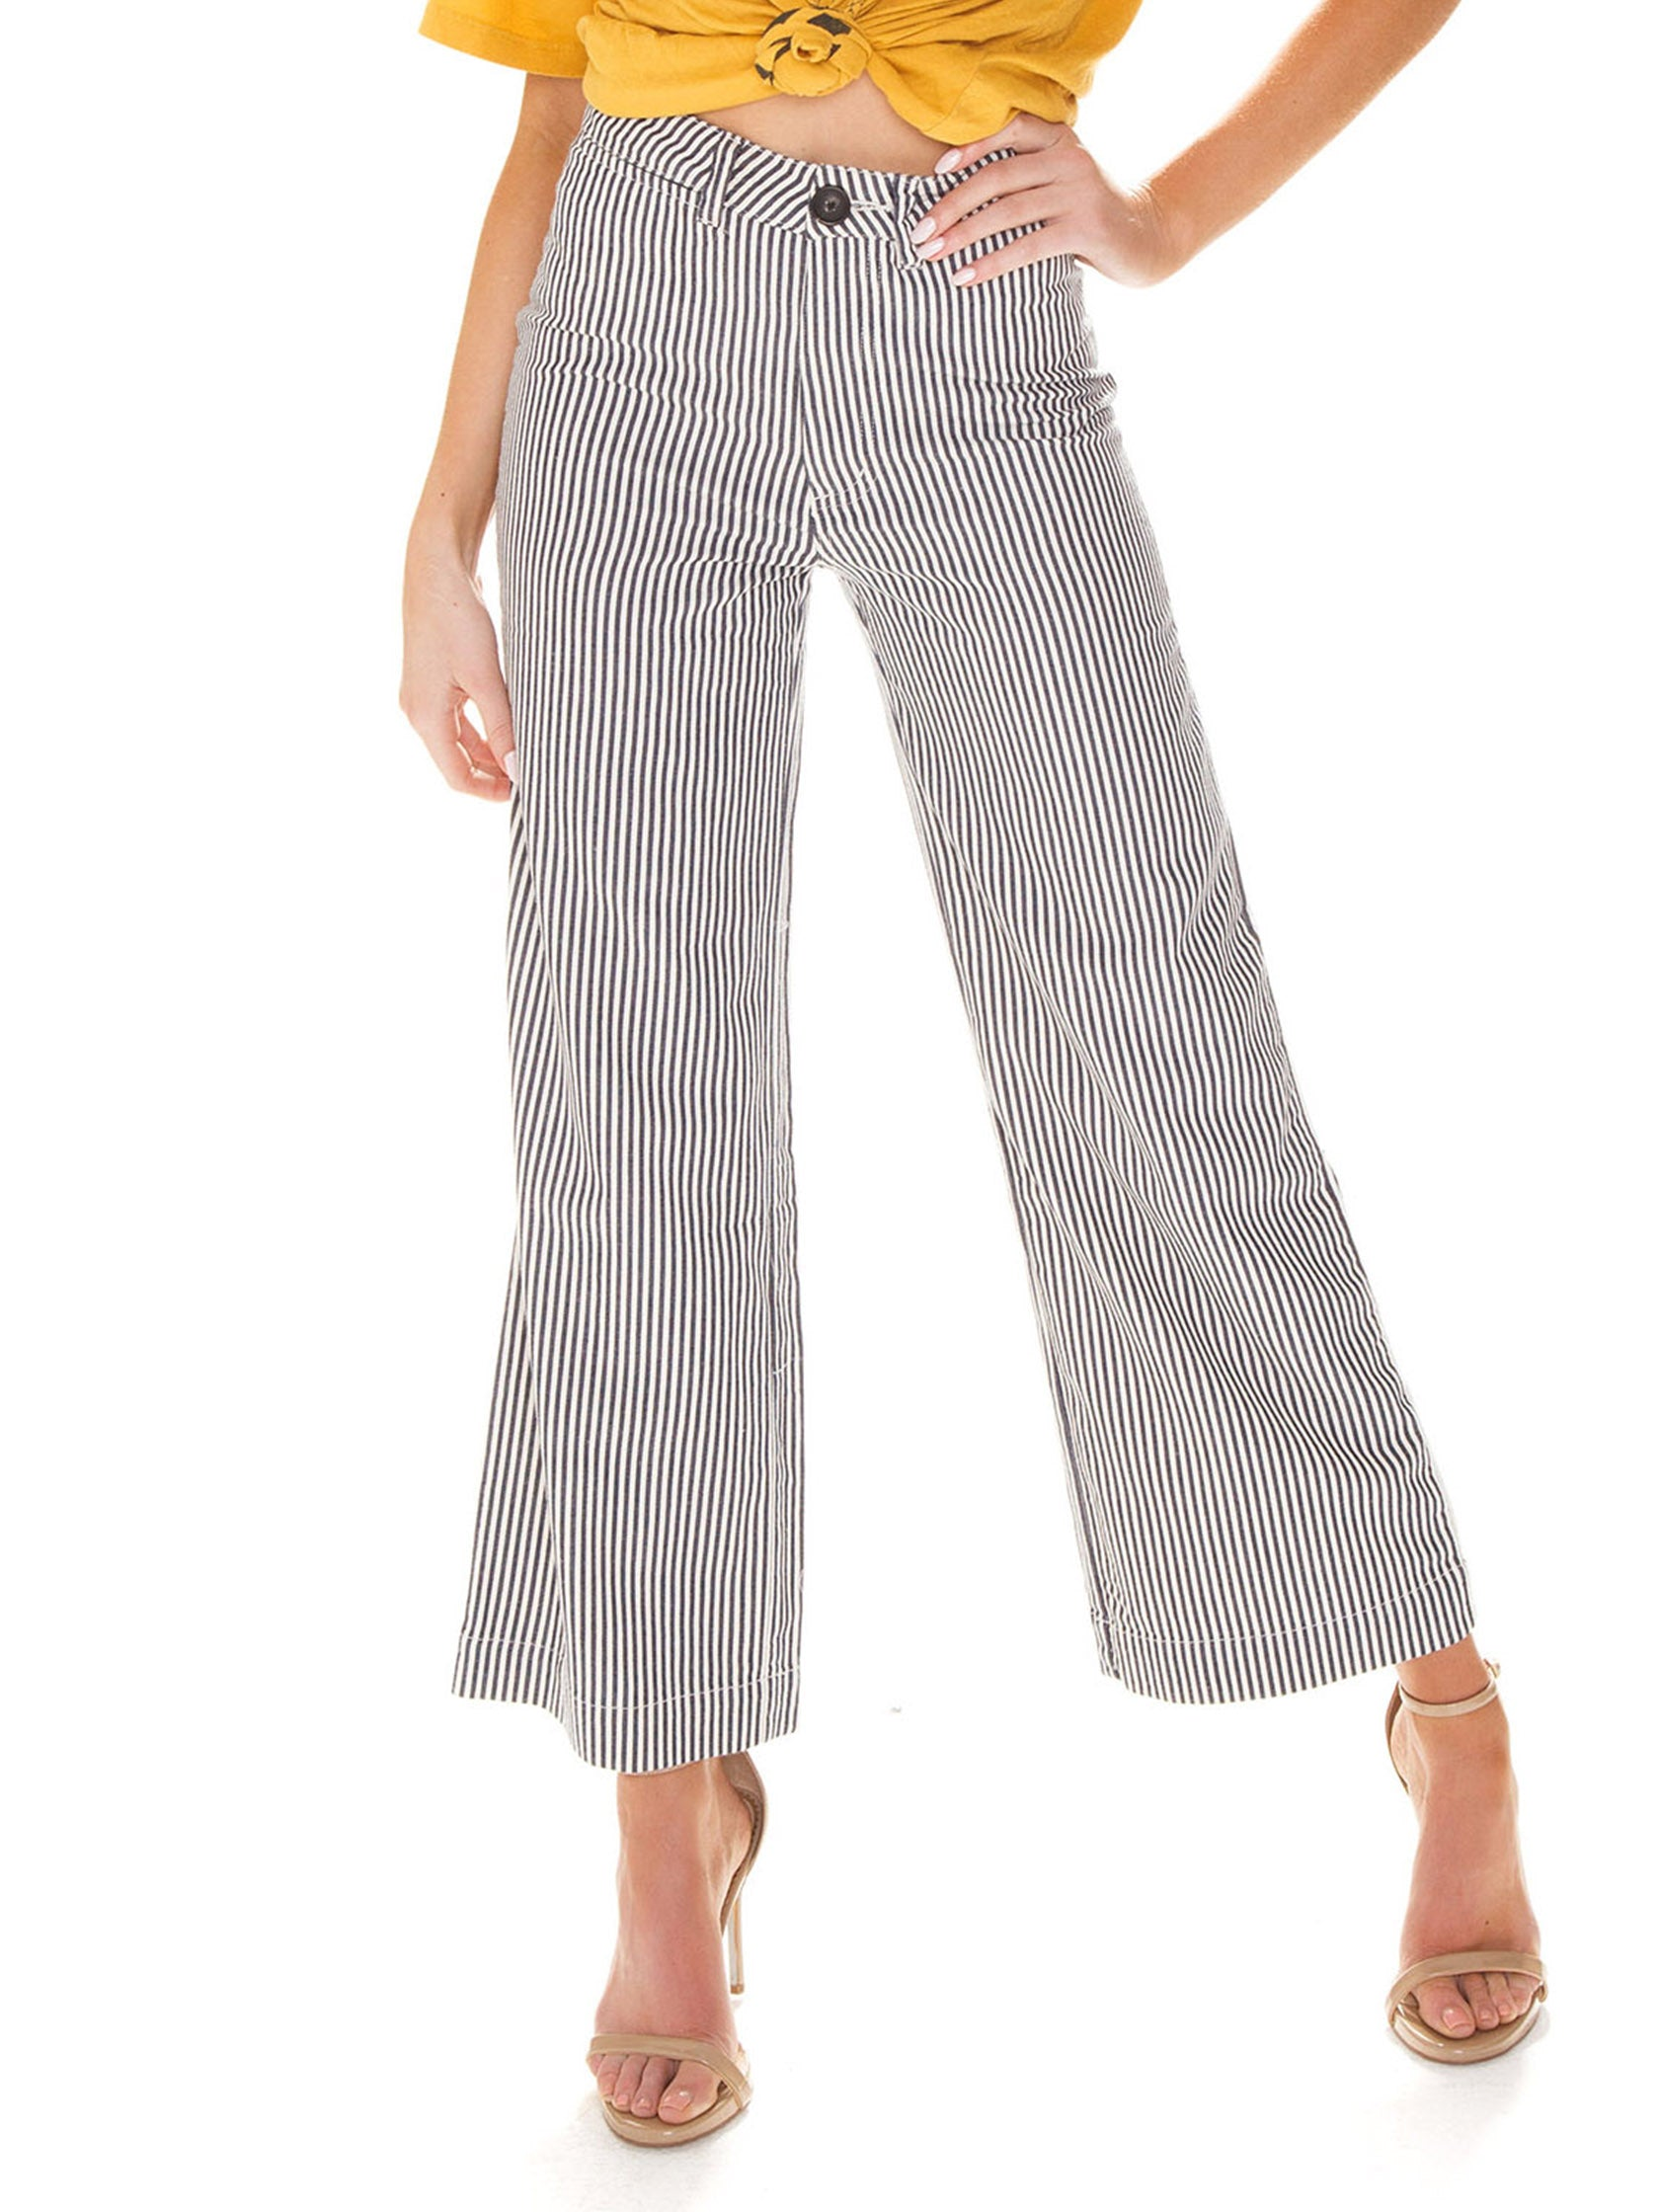 Woman wearing a pants rental from ROLLAS called Old Mate Pant